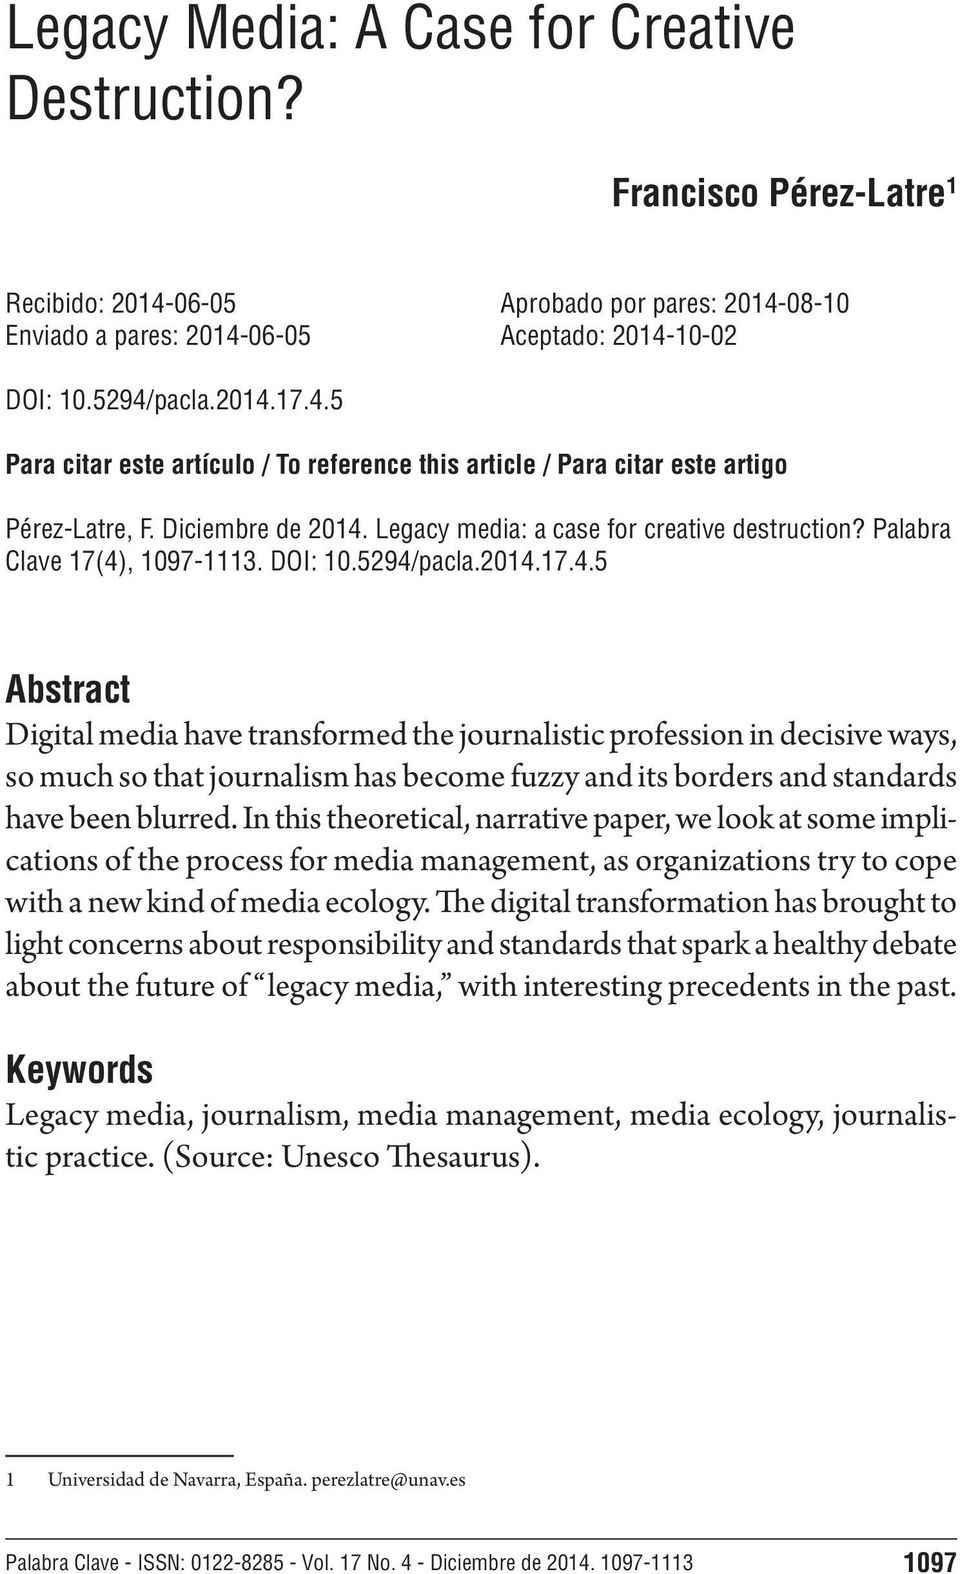 DOI: 10.5294/pacla.2014.17.4.5 Abstract Digital media have transformed the journalistic profession in decisive ways, so much so that journalism has become fuzzy and its borders and standards have been blurred.